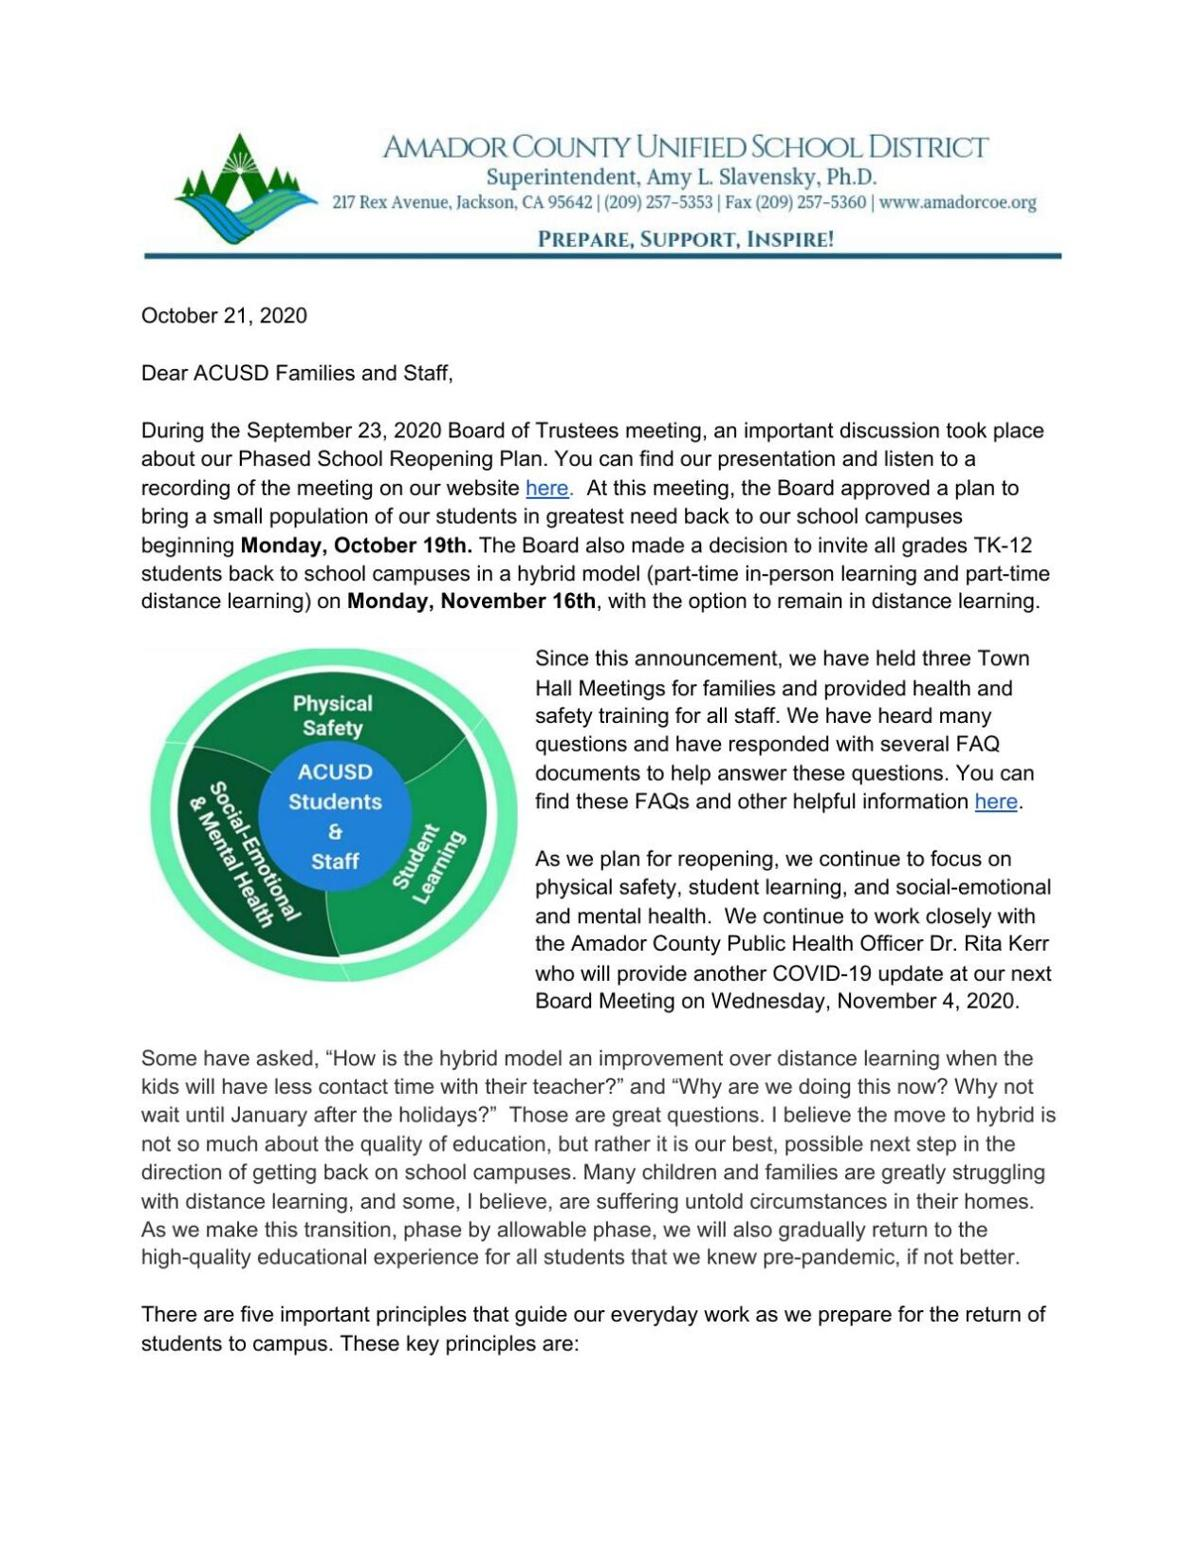 ACUSD Update: Bringing Students Back to School Campuses